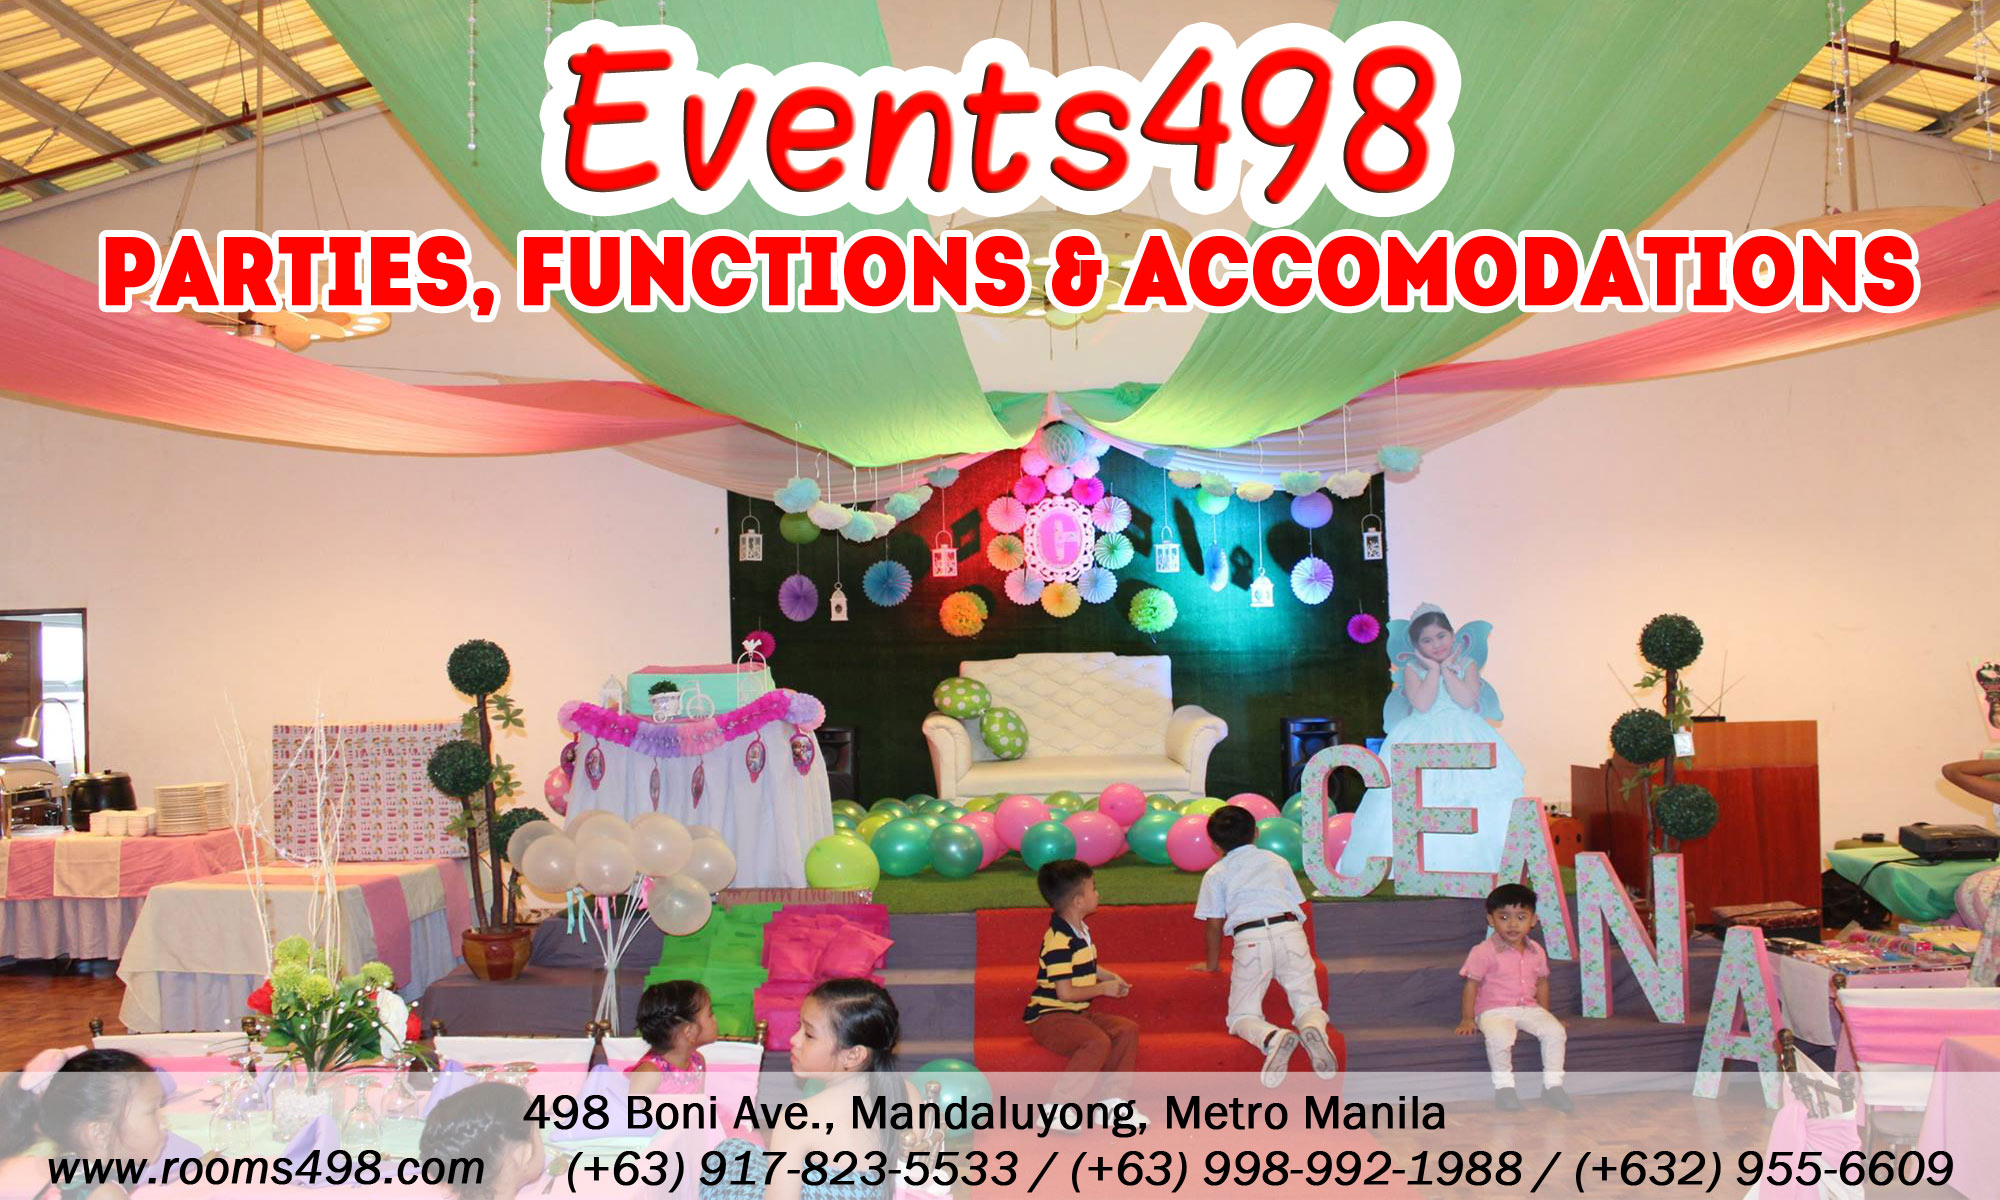 Parties functions accomodations room rentals Events498 - www.rooms498.com